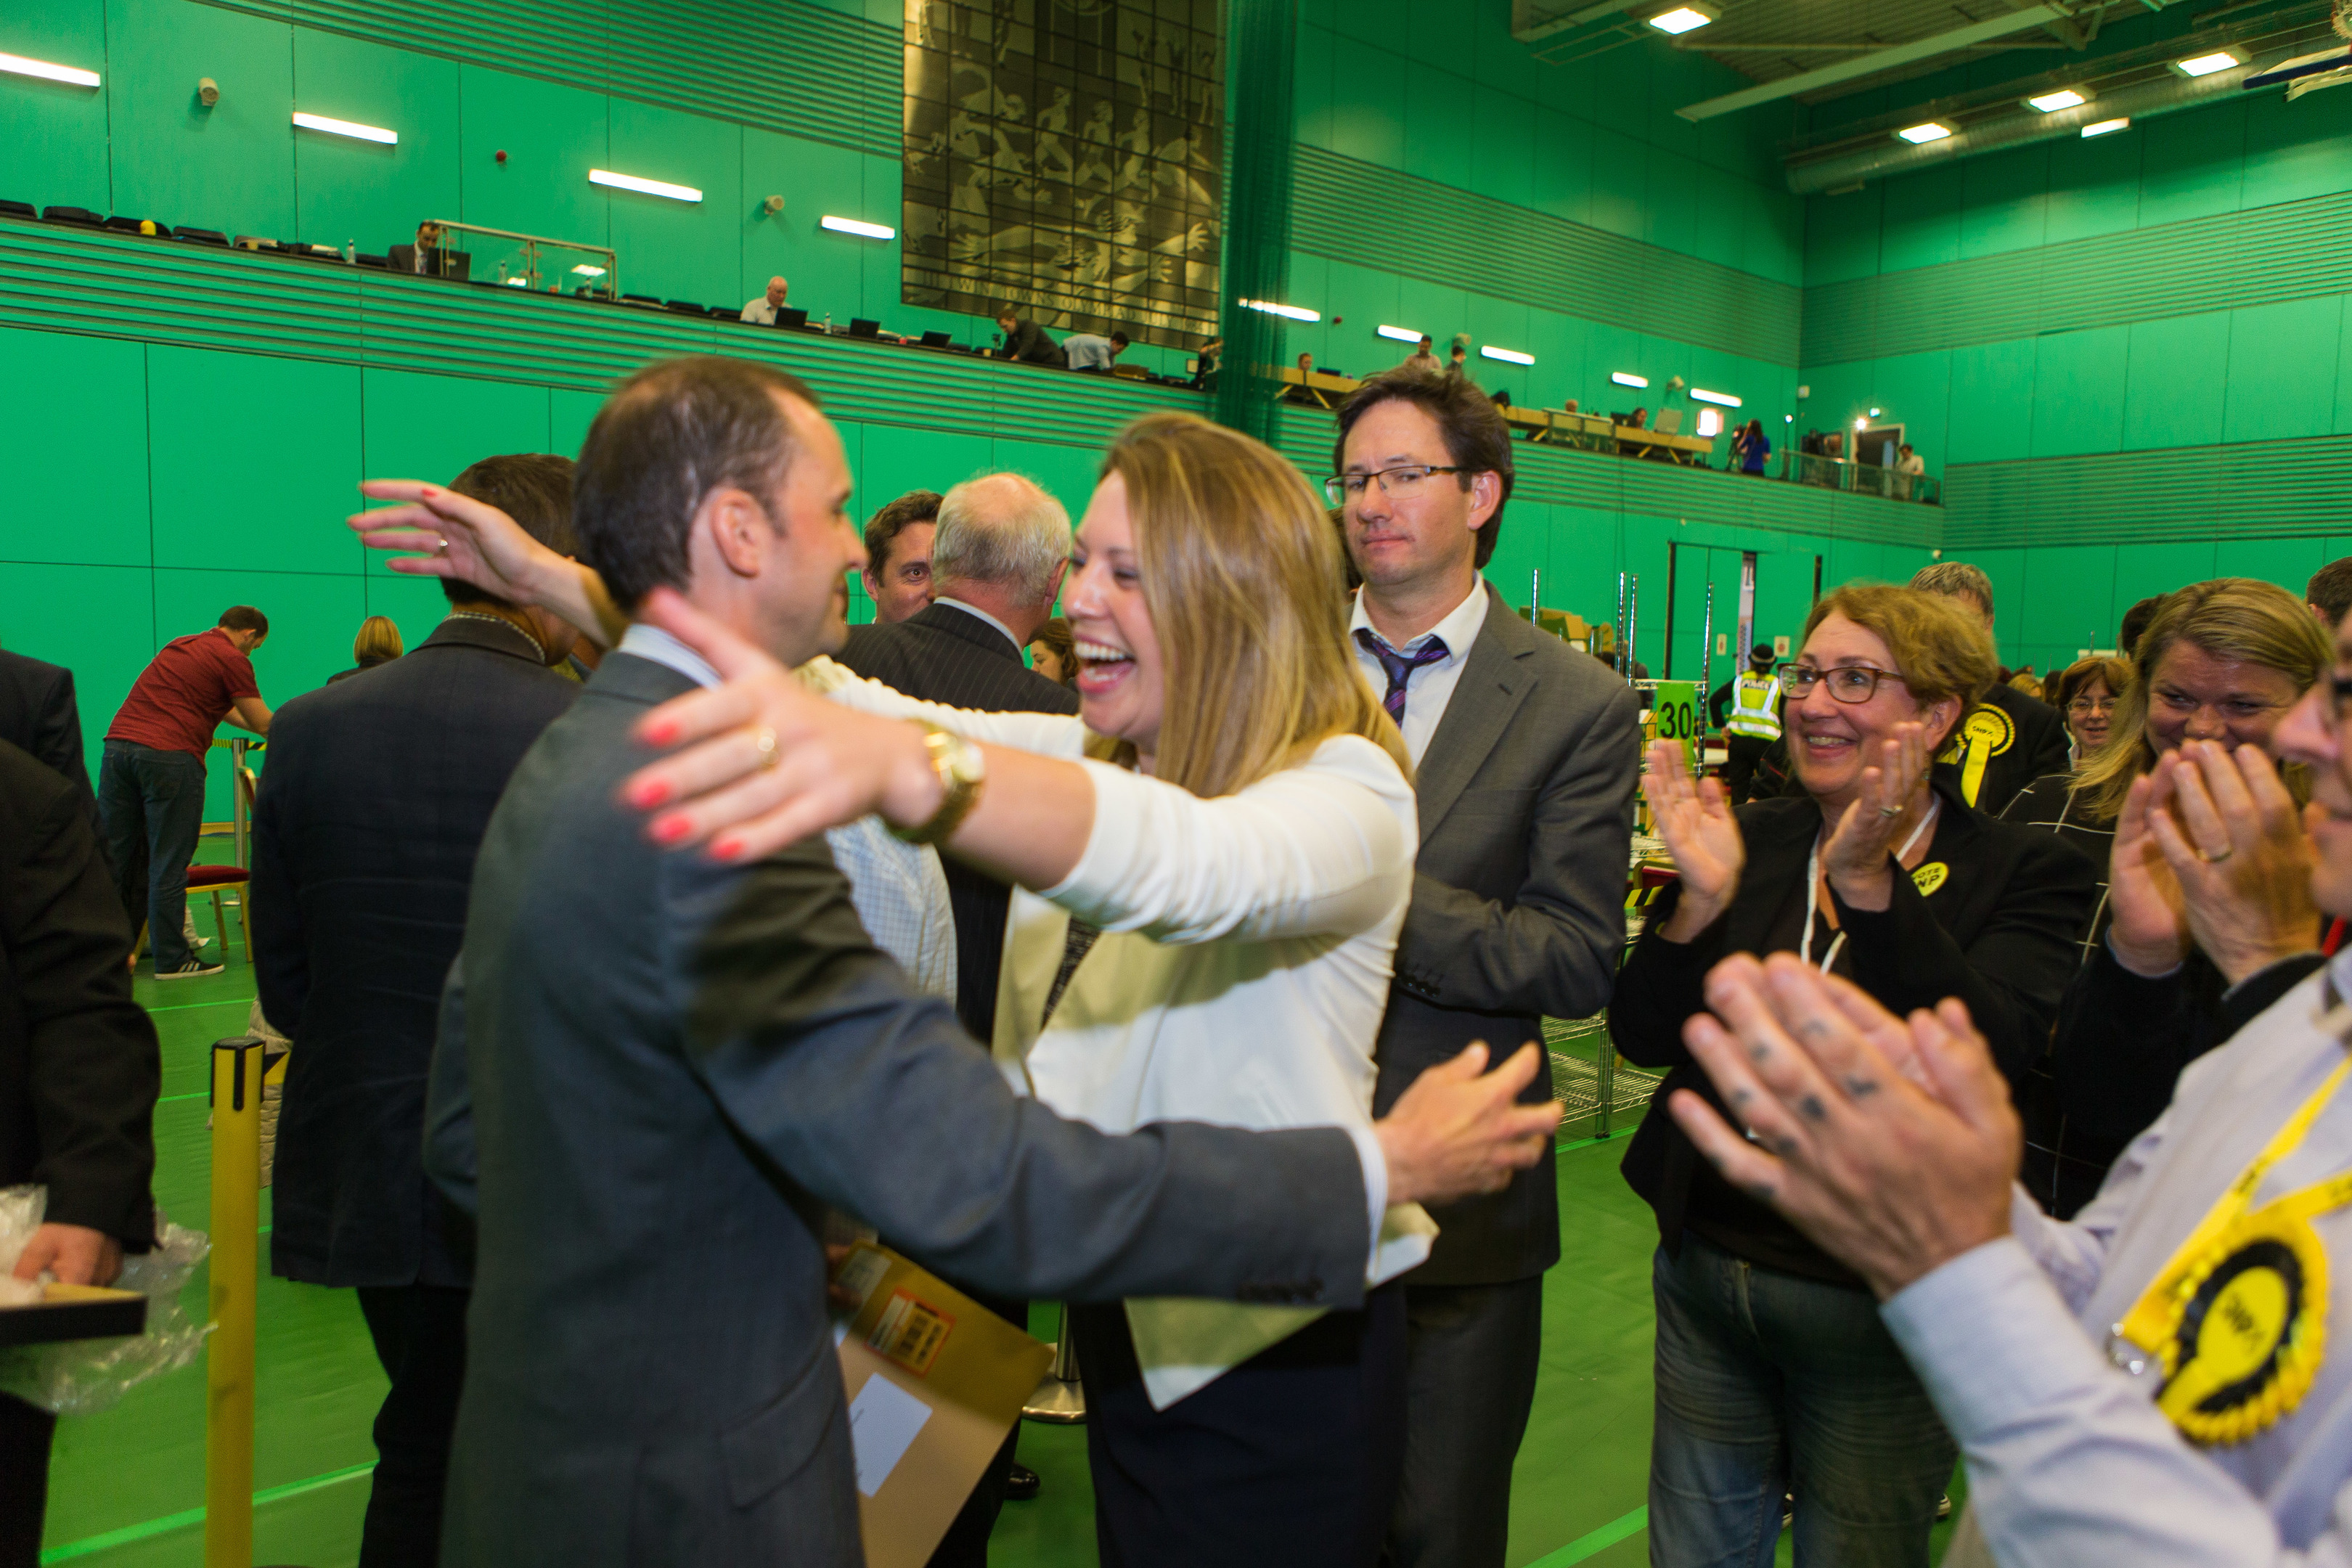 Congratulations all round at Michael Woods Centre in Glenrothes, as Stephen Gethins wins North East Fife.